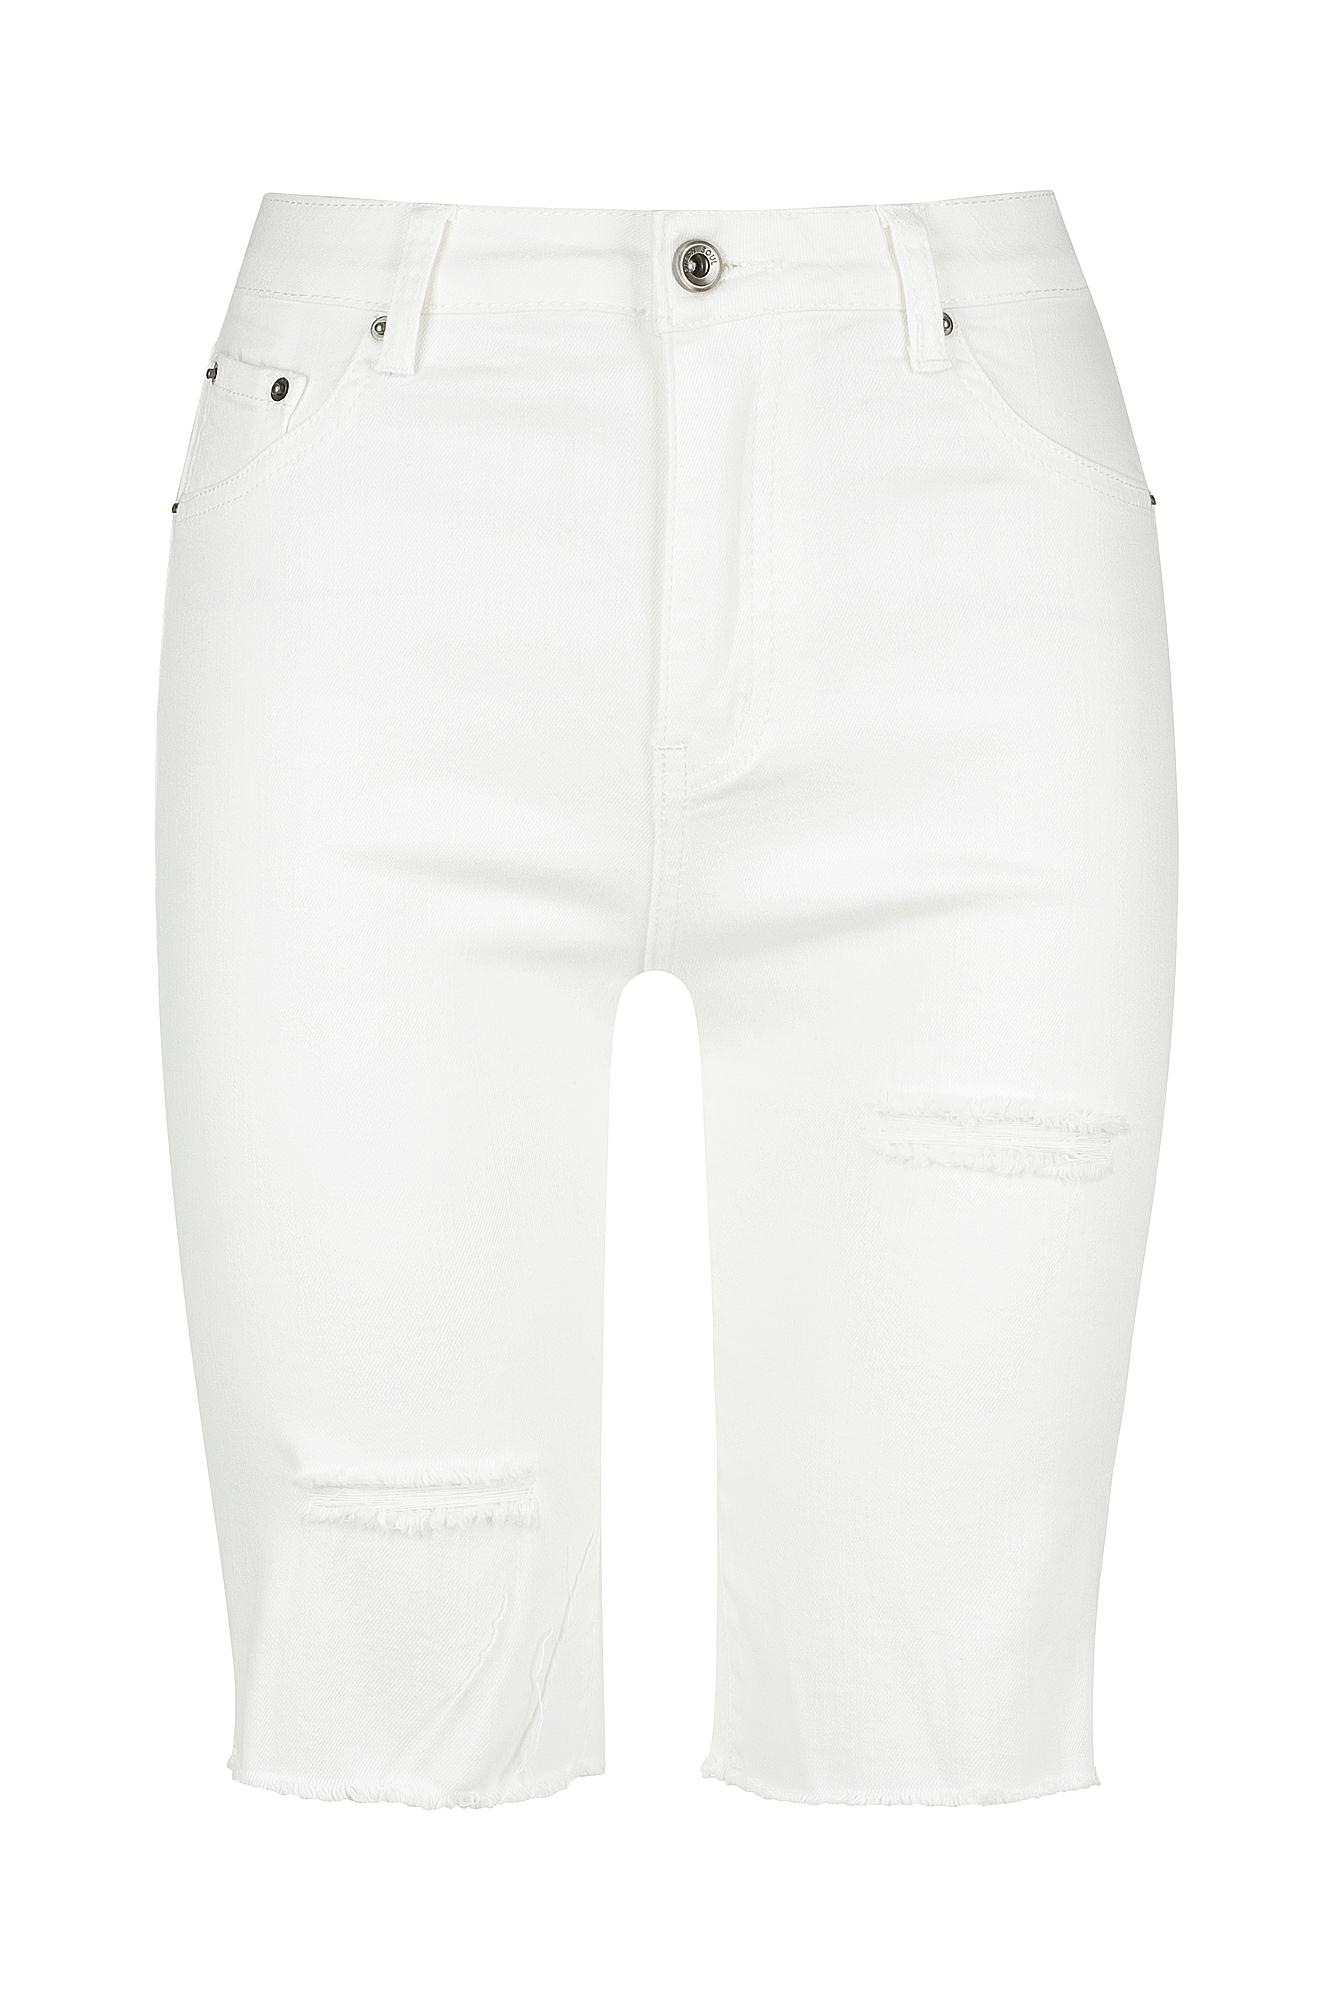 Vice Shorts Ladies Shorts Colour is White